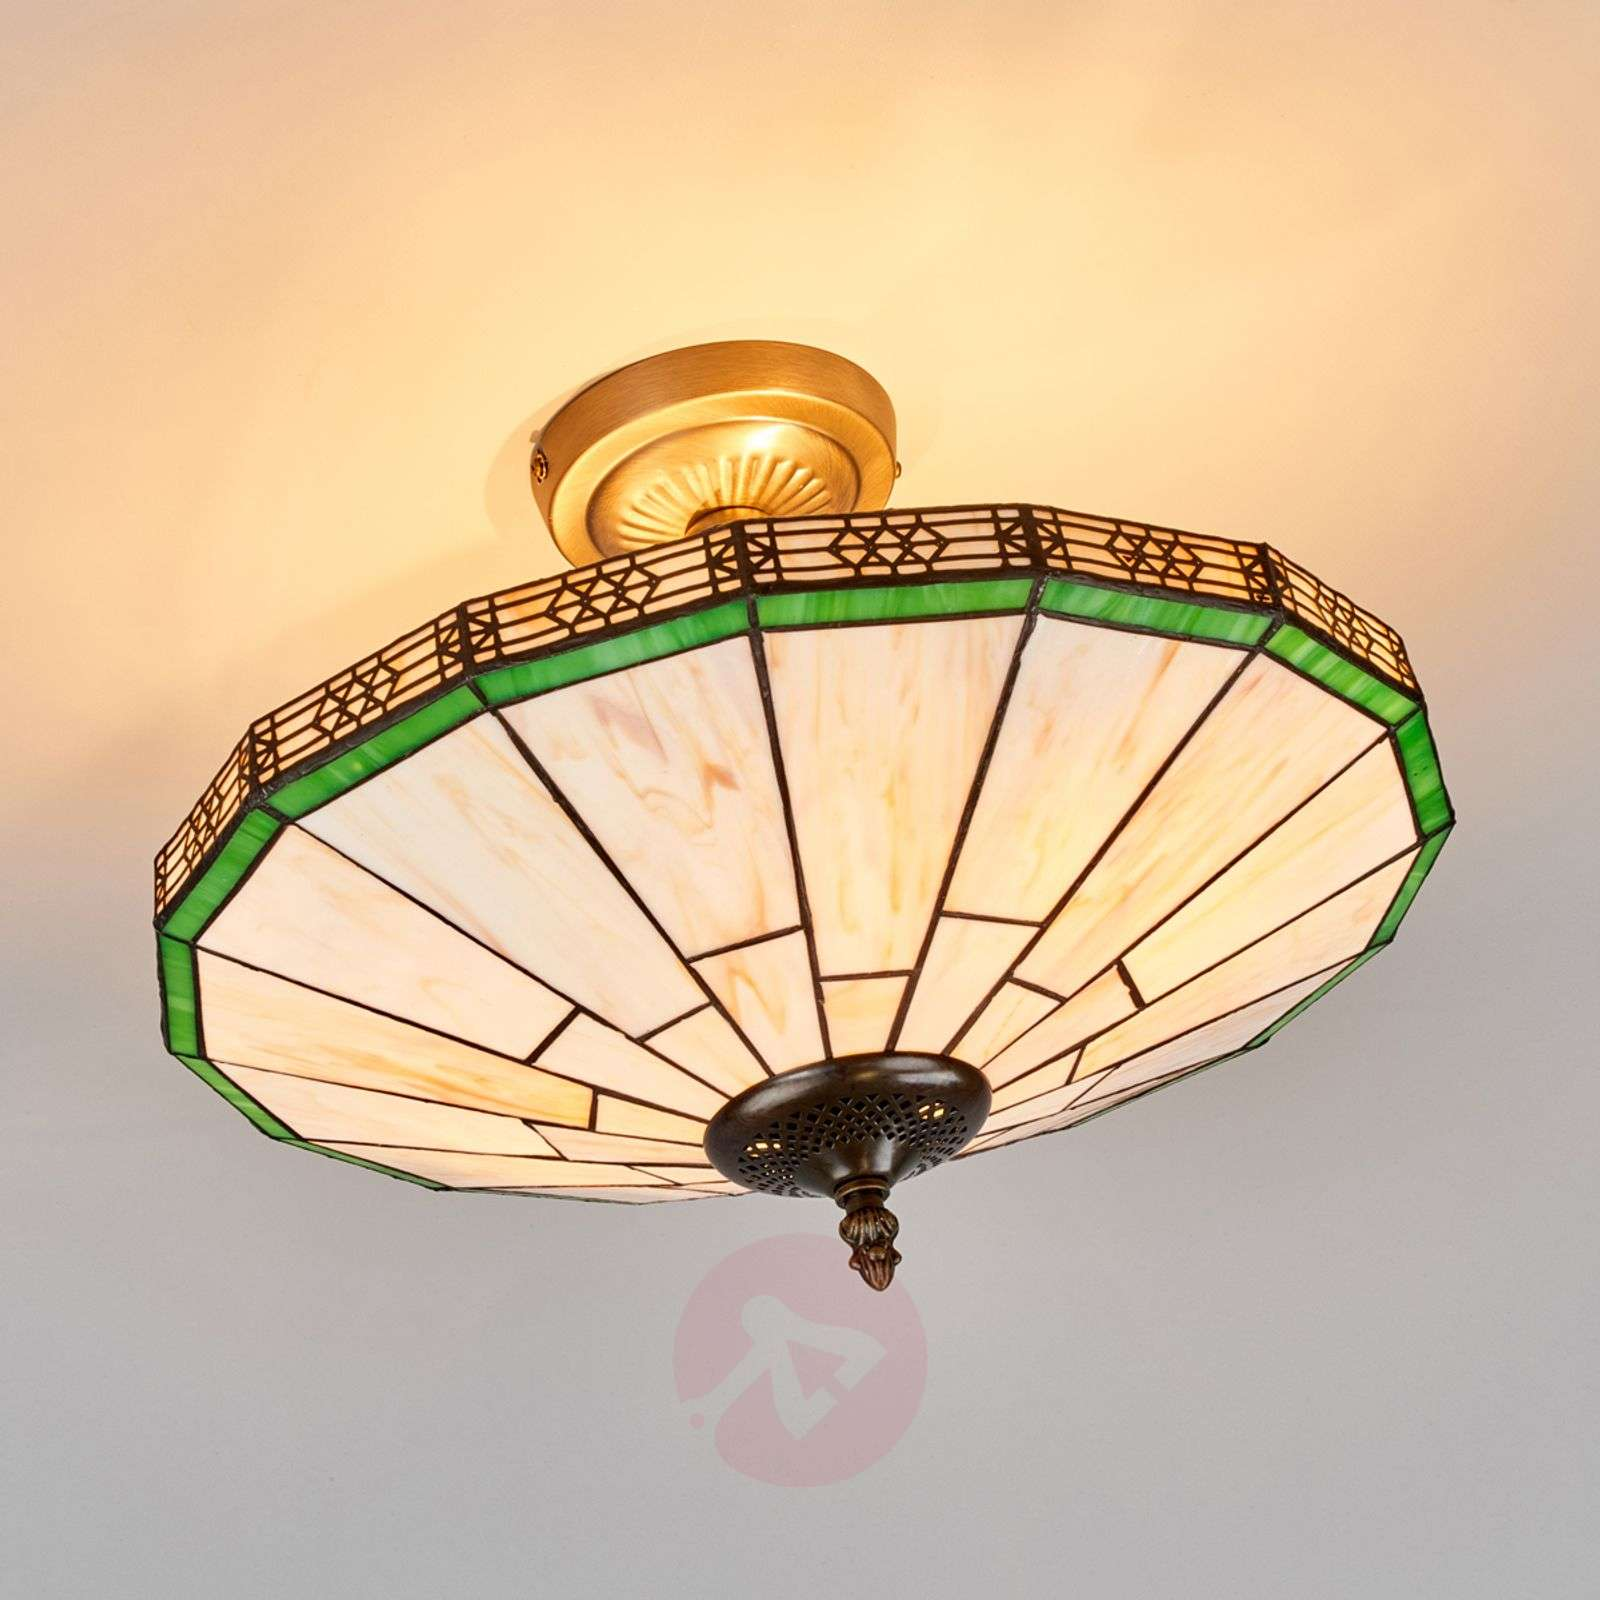 New York Classic Tiffany-style ceiling light-8570409-02